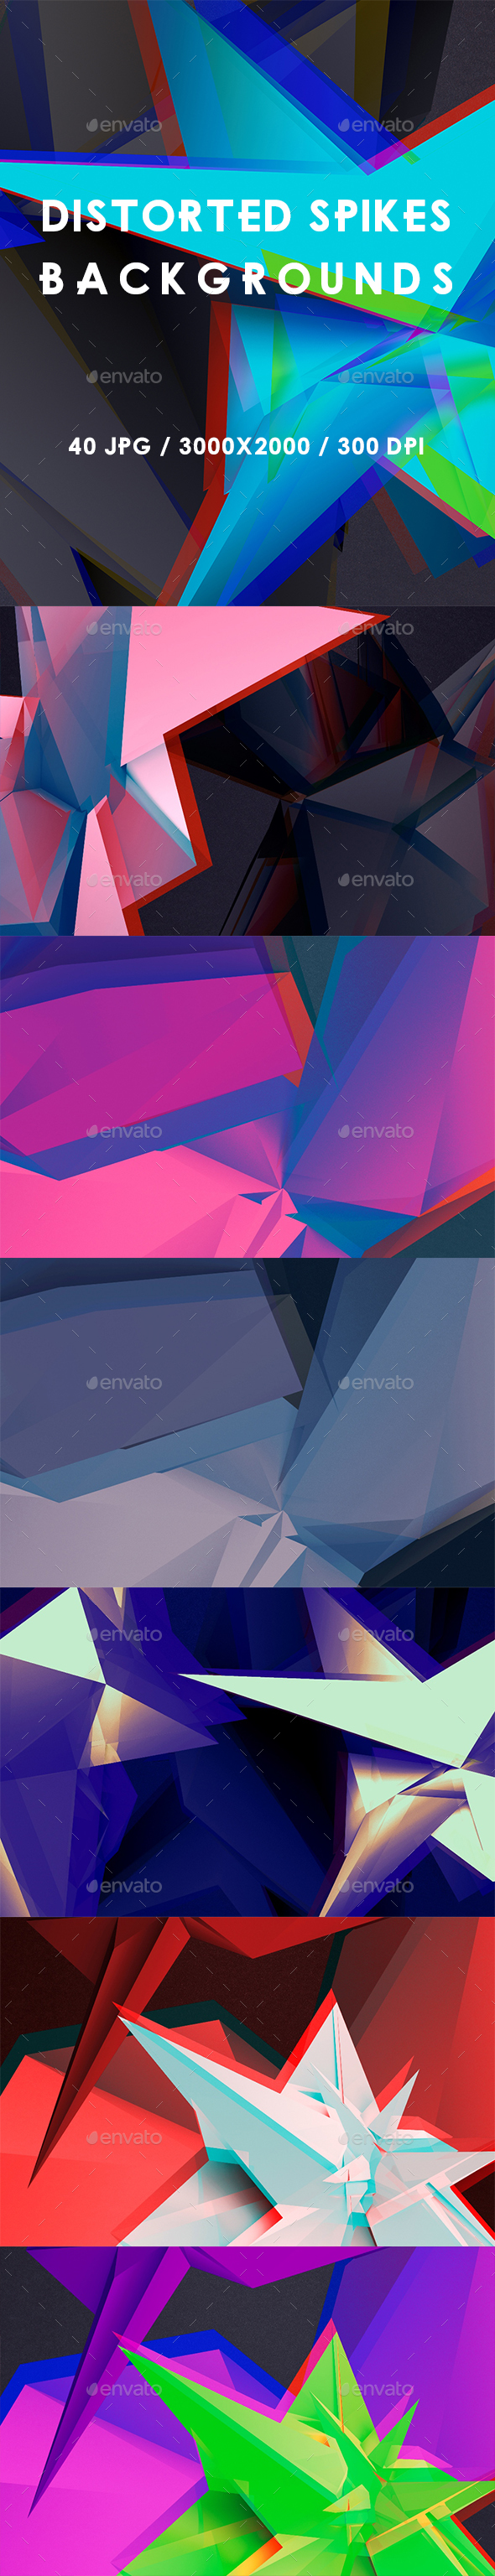 40 Distorted Spikes Backgrounds - Abstract Backgrounds